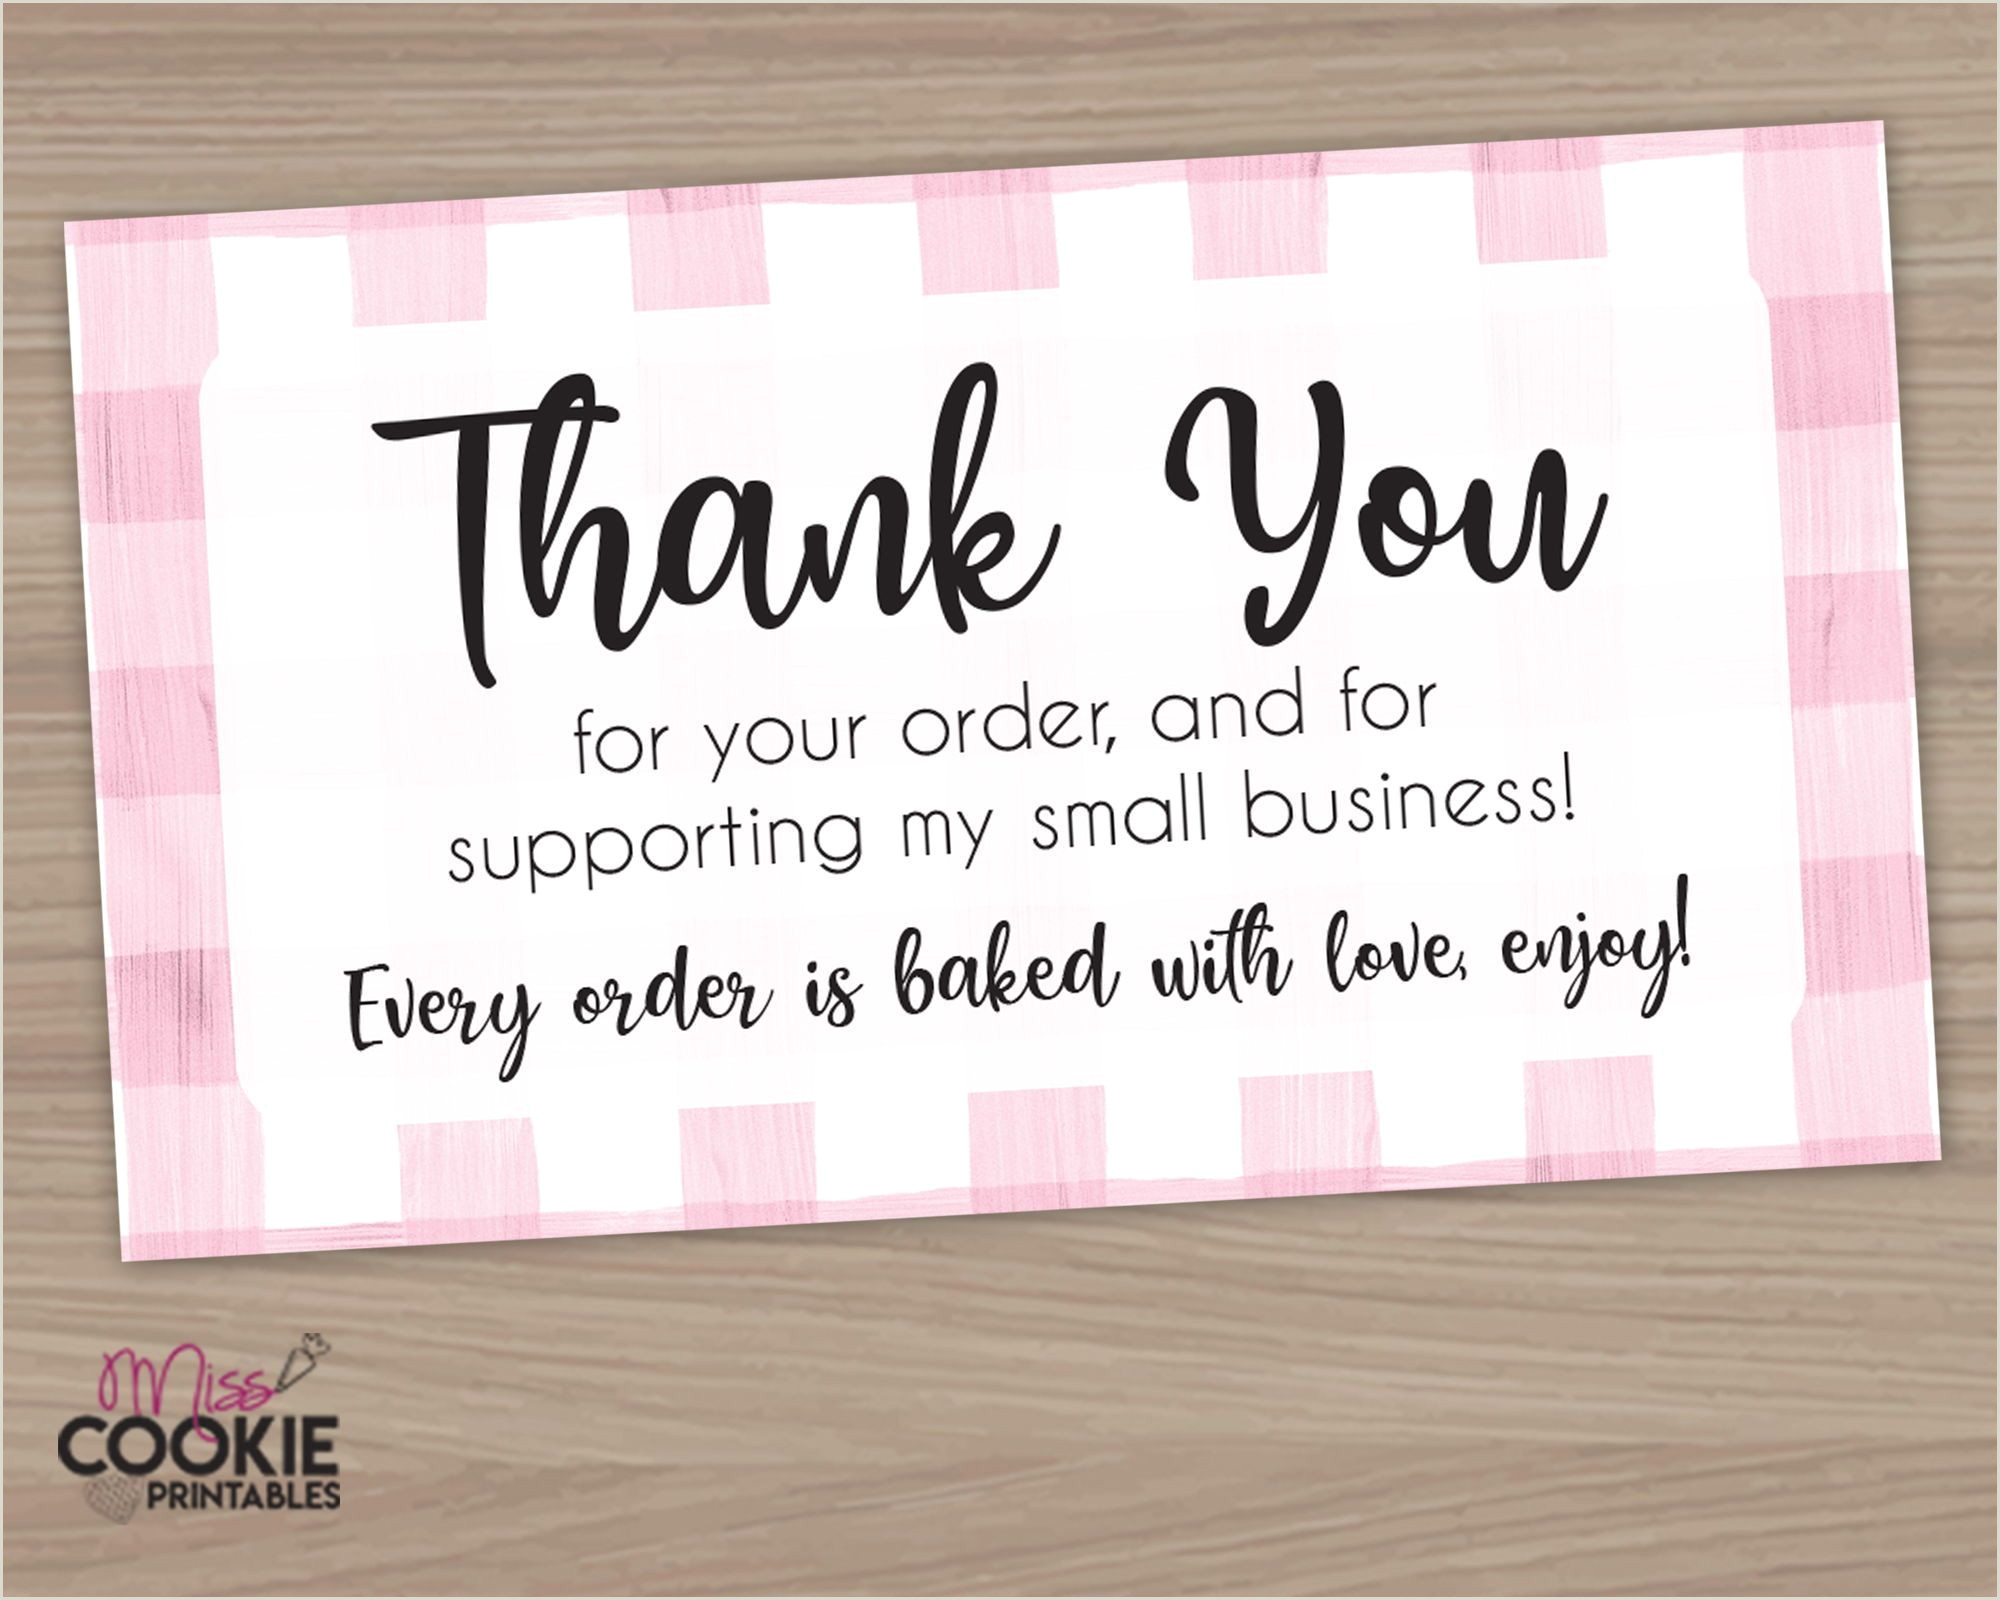 Thank You Card Design Ideas Printable Thank You For Your Order And For Supporting My